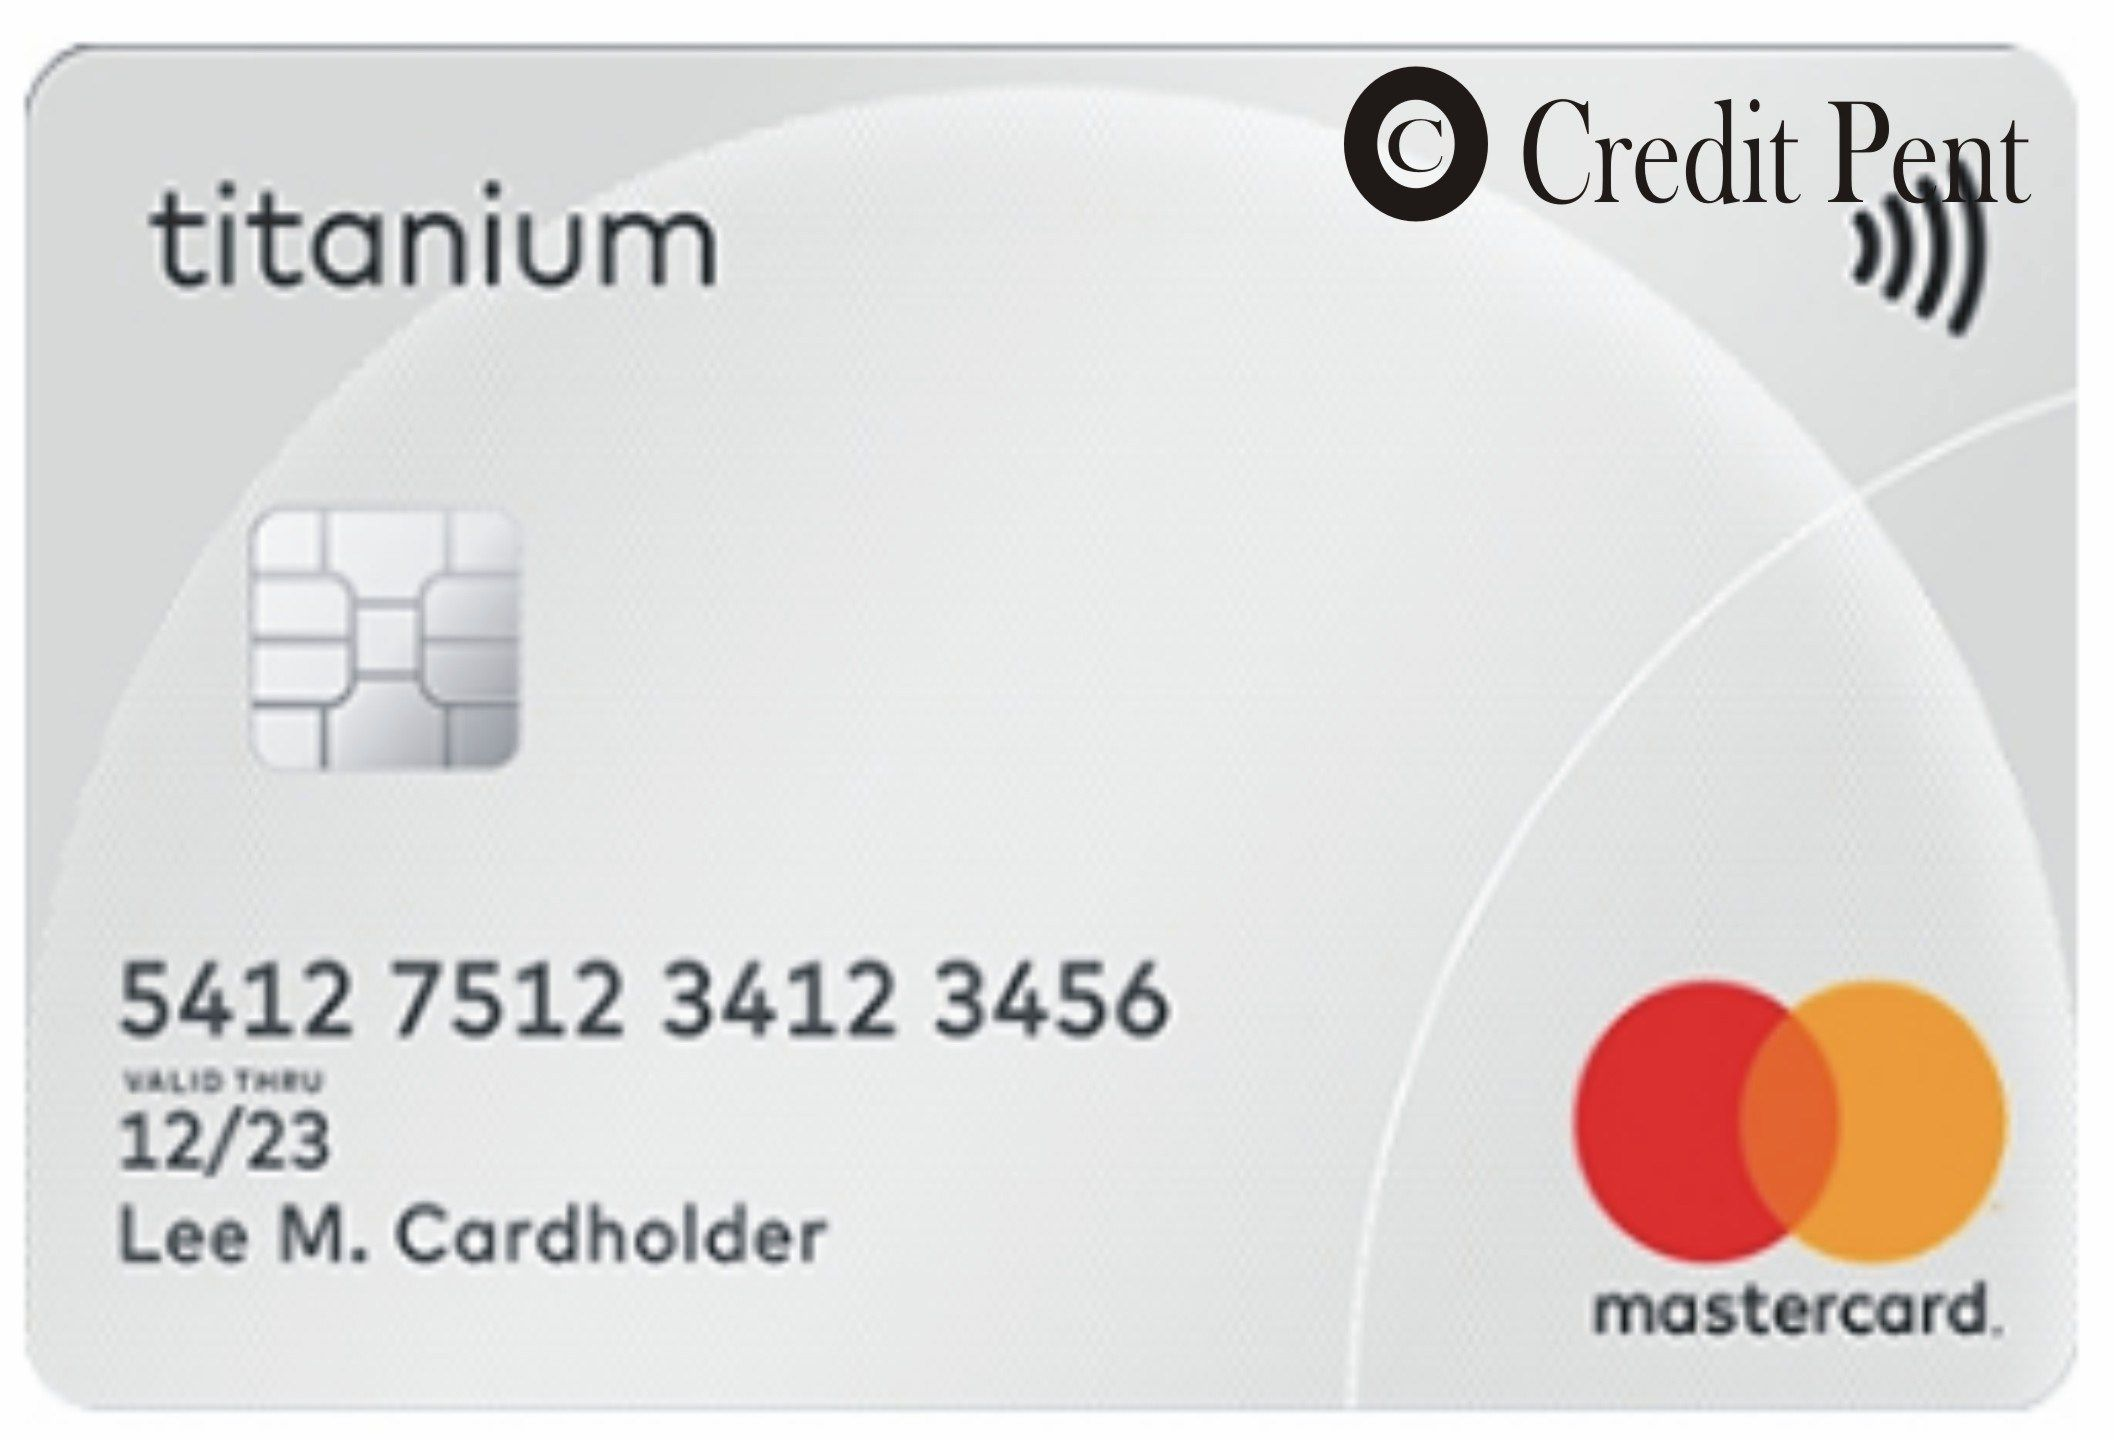 Hdfc Titanium Times Credit Card Credit Card Cards Mastercard